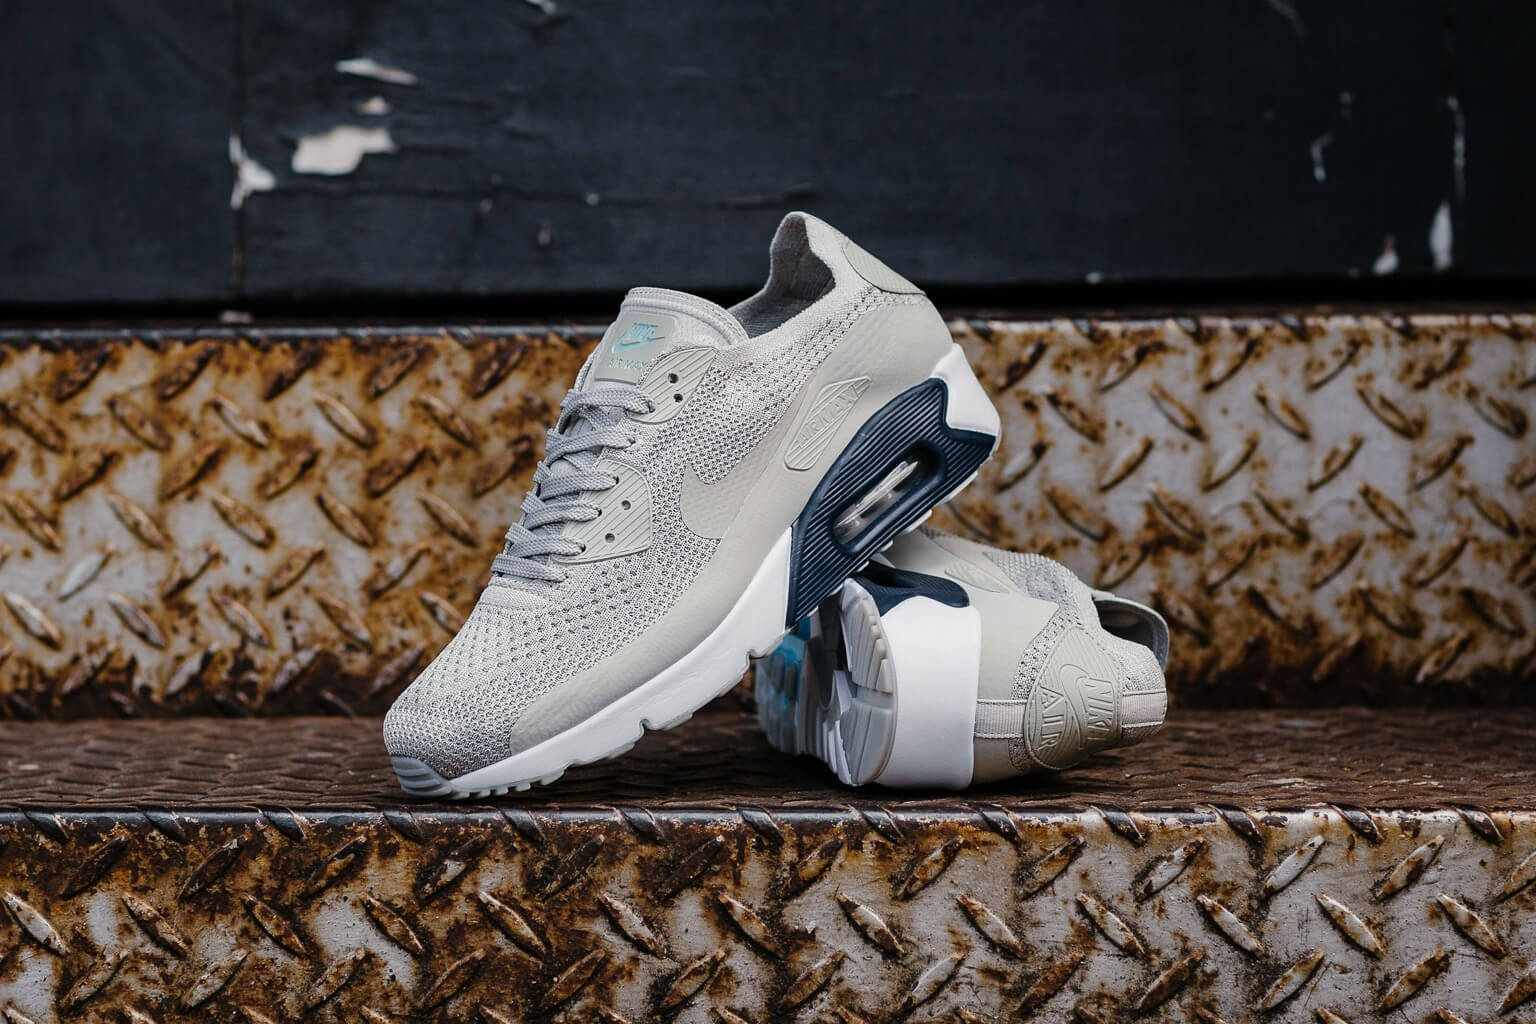 outlet store b3063 33879 ... Nike Air Max 90 Ultra 2.0 Flyknit 875943-006, Running, Nike -  SOLEHEAVEN ...